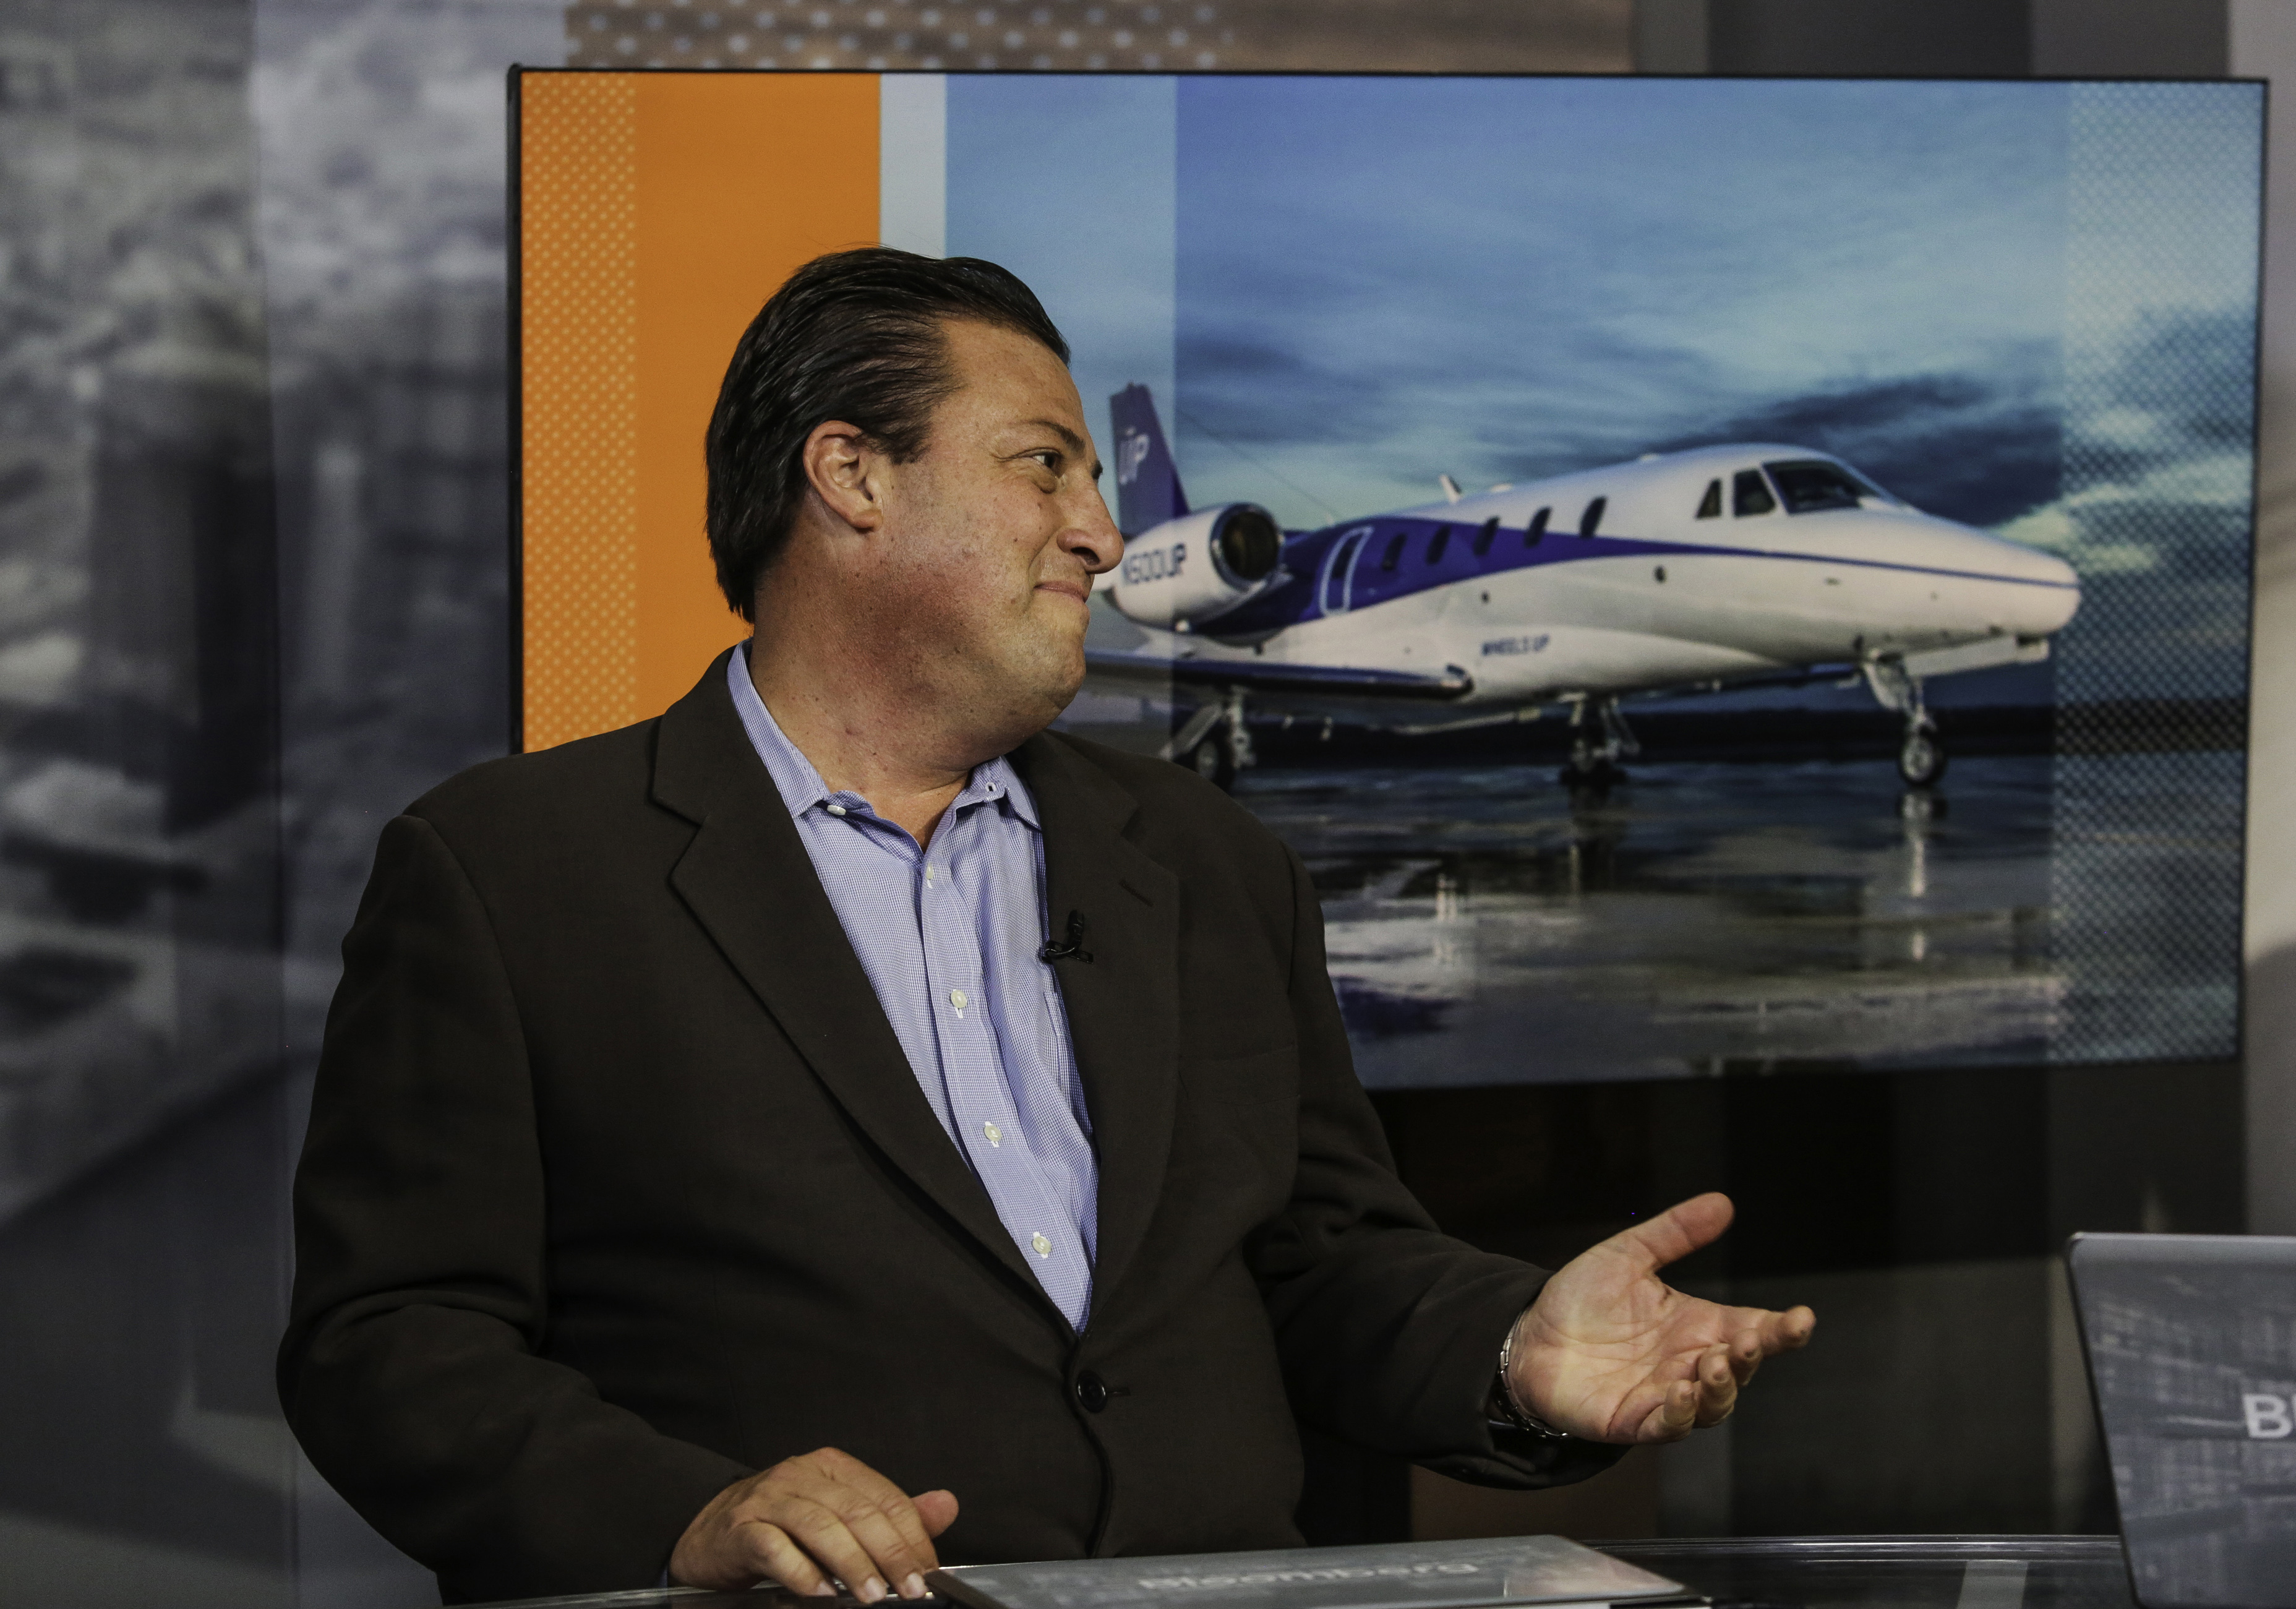 Kenny Dichter, founder and chief executive officer of Wheels Up, speaks during a Bloomberg Television interview in New York, U.S., on Thursday, Oct. 1, 2015. Dichter discussed the growth prospects for the membership-based private aviation company, which he said will have 55 planes in its fleet by the end of the year. Photographer: Chris Goodney/Bloomberg *** Local Caption *** Kenny Dichter